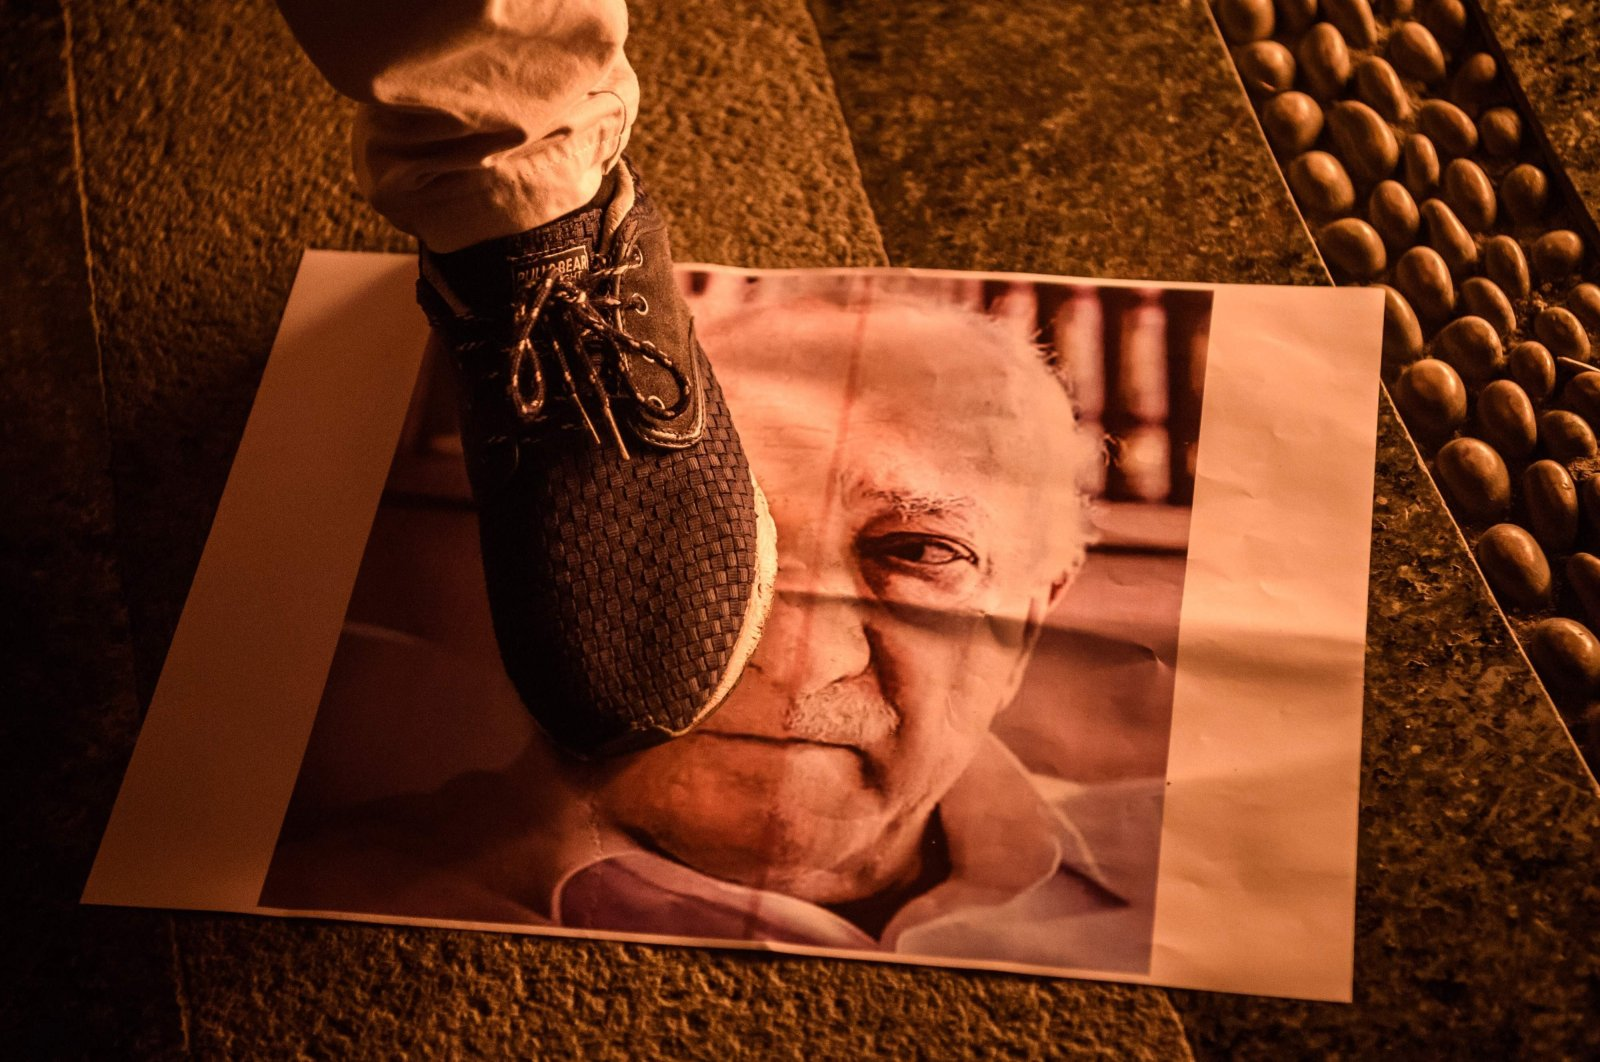 A protester walks on a picture of FETÖ leader Fetullah Gülen during a rally against the coup attempt, in Istanbul, Turkey, July 18, 2016. (AFP PHOTO)